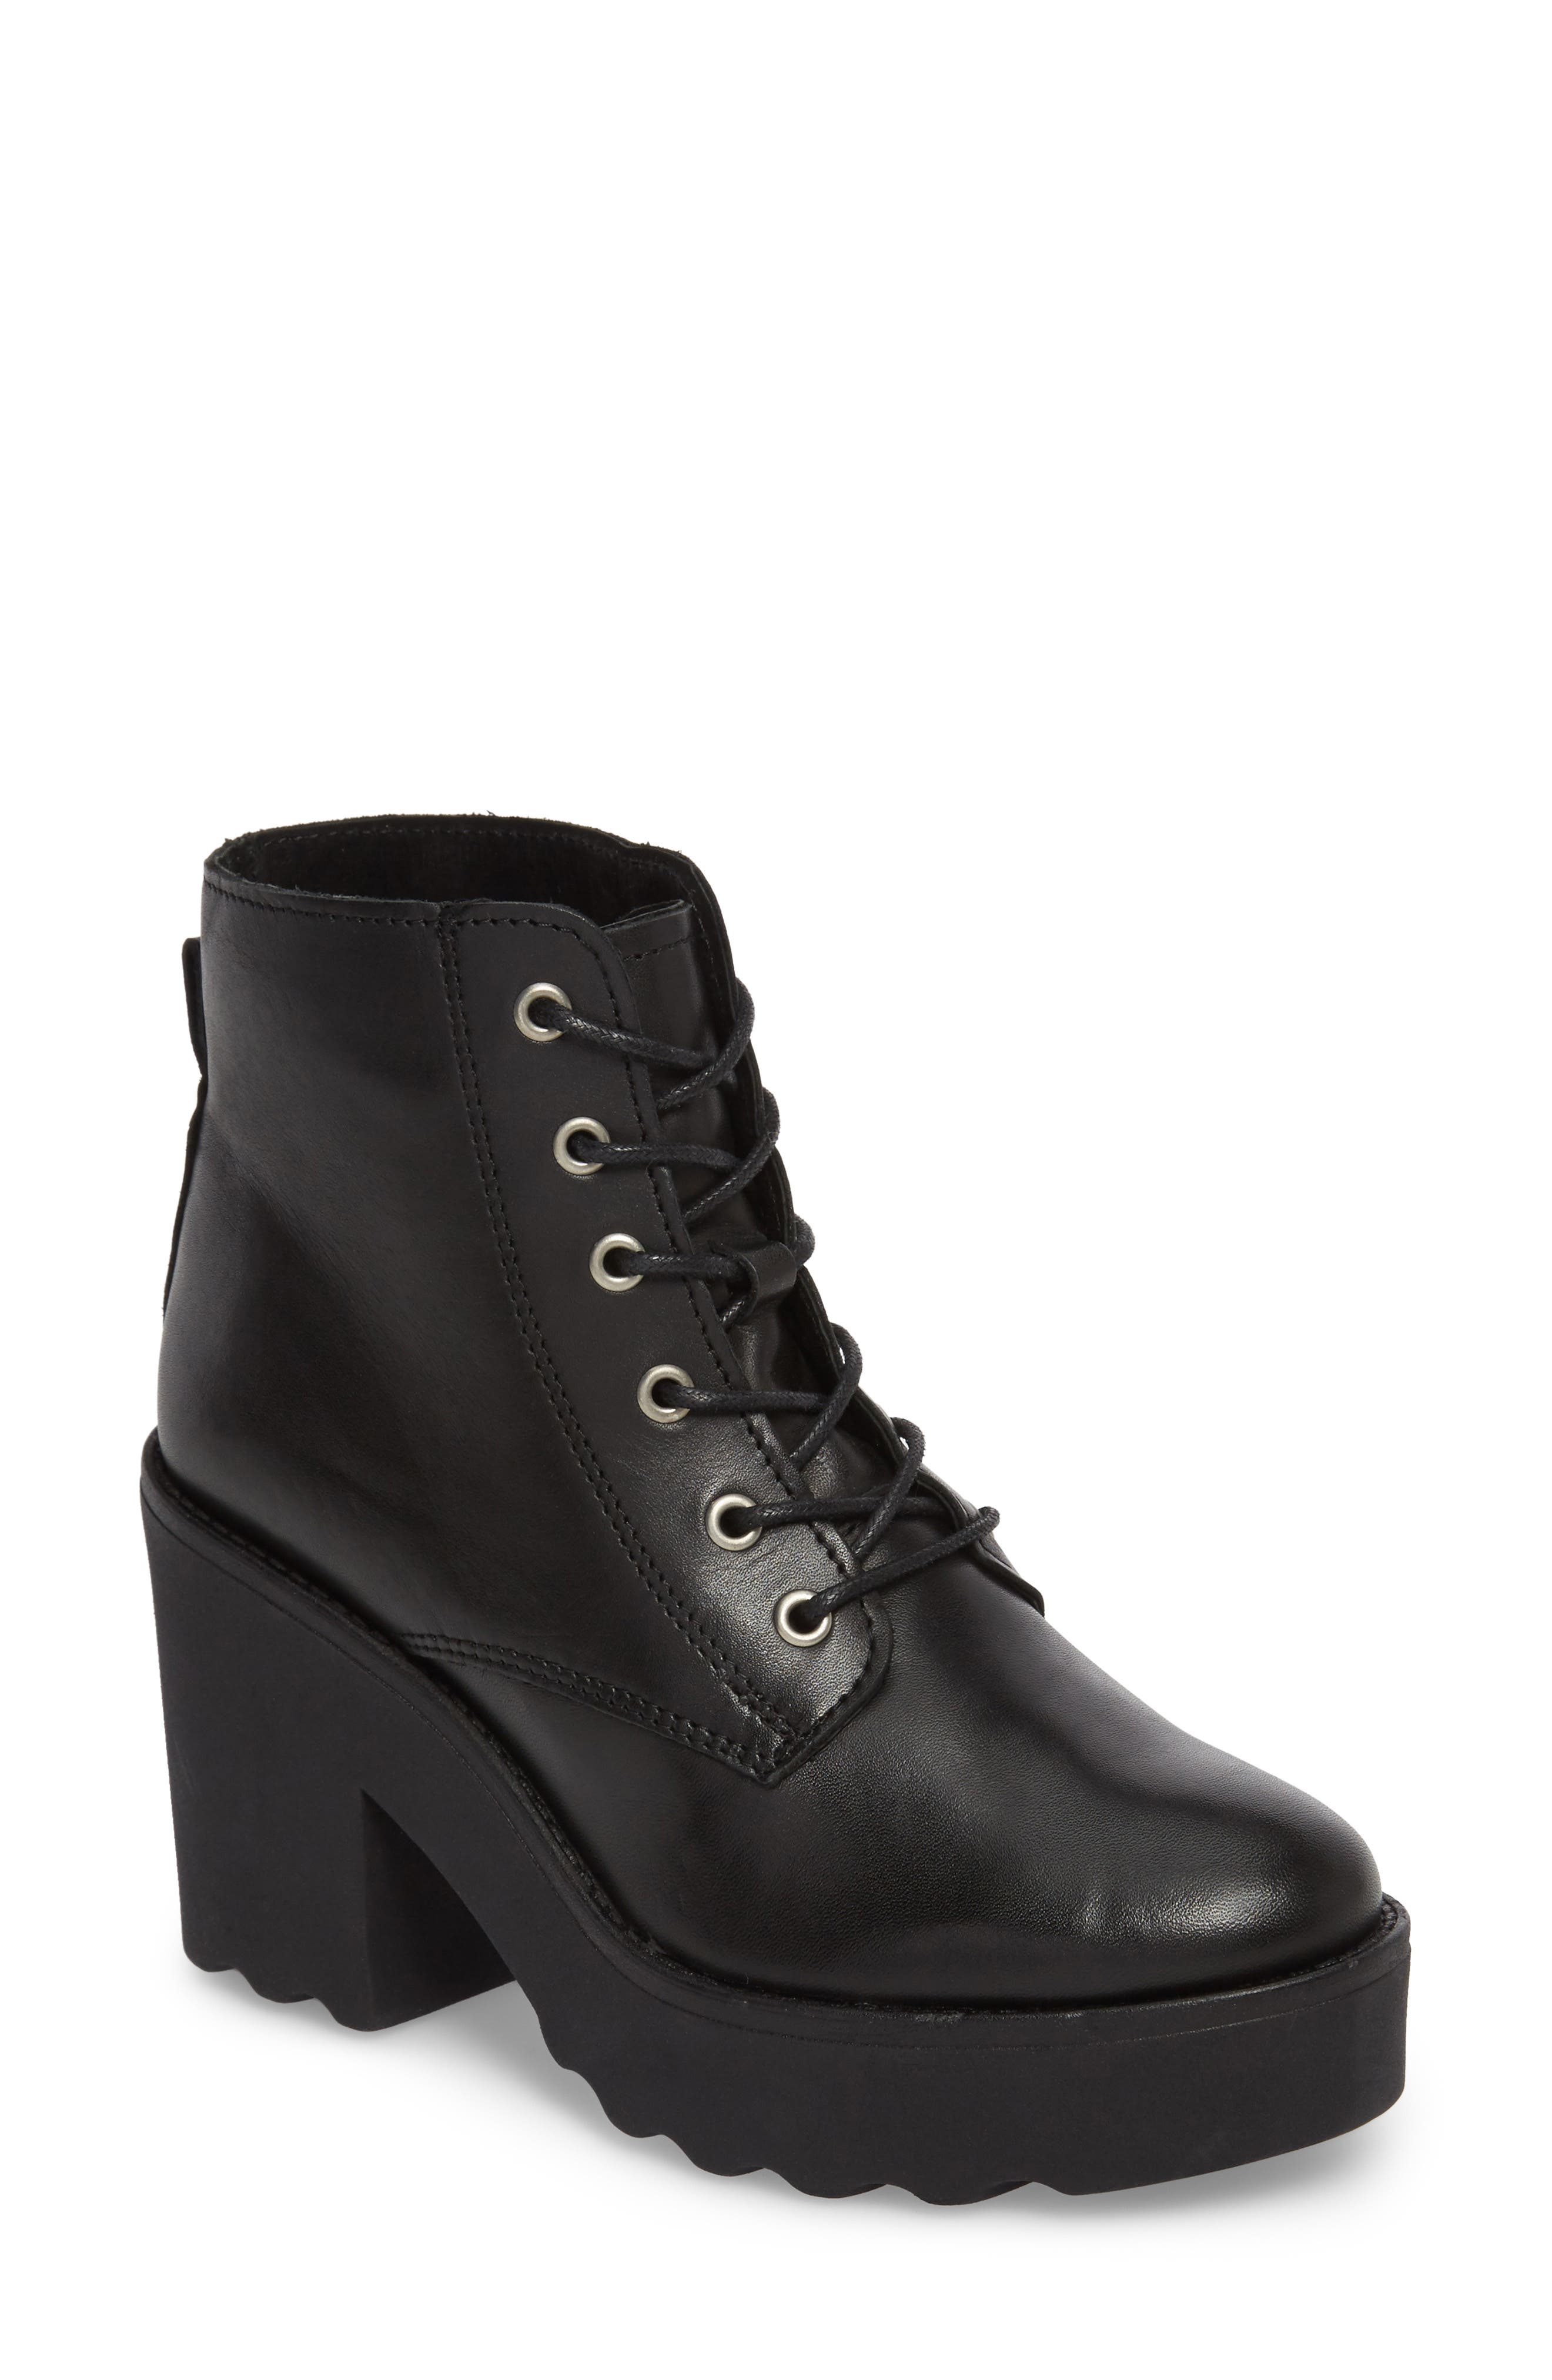 Gusto Boot,                             Main thumbnail 1, color,                             Black Leather